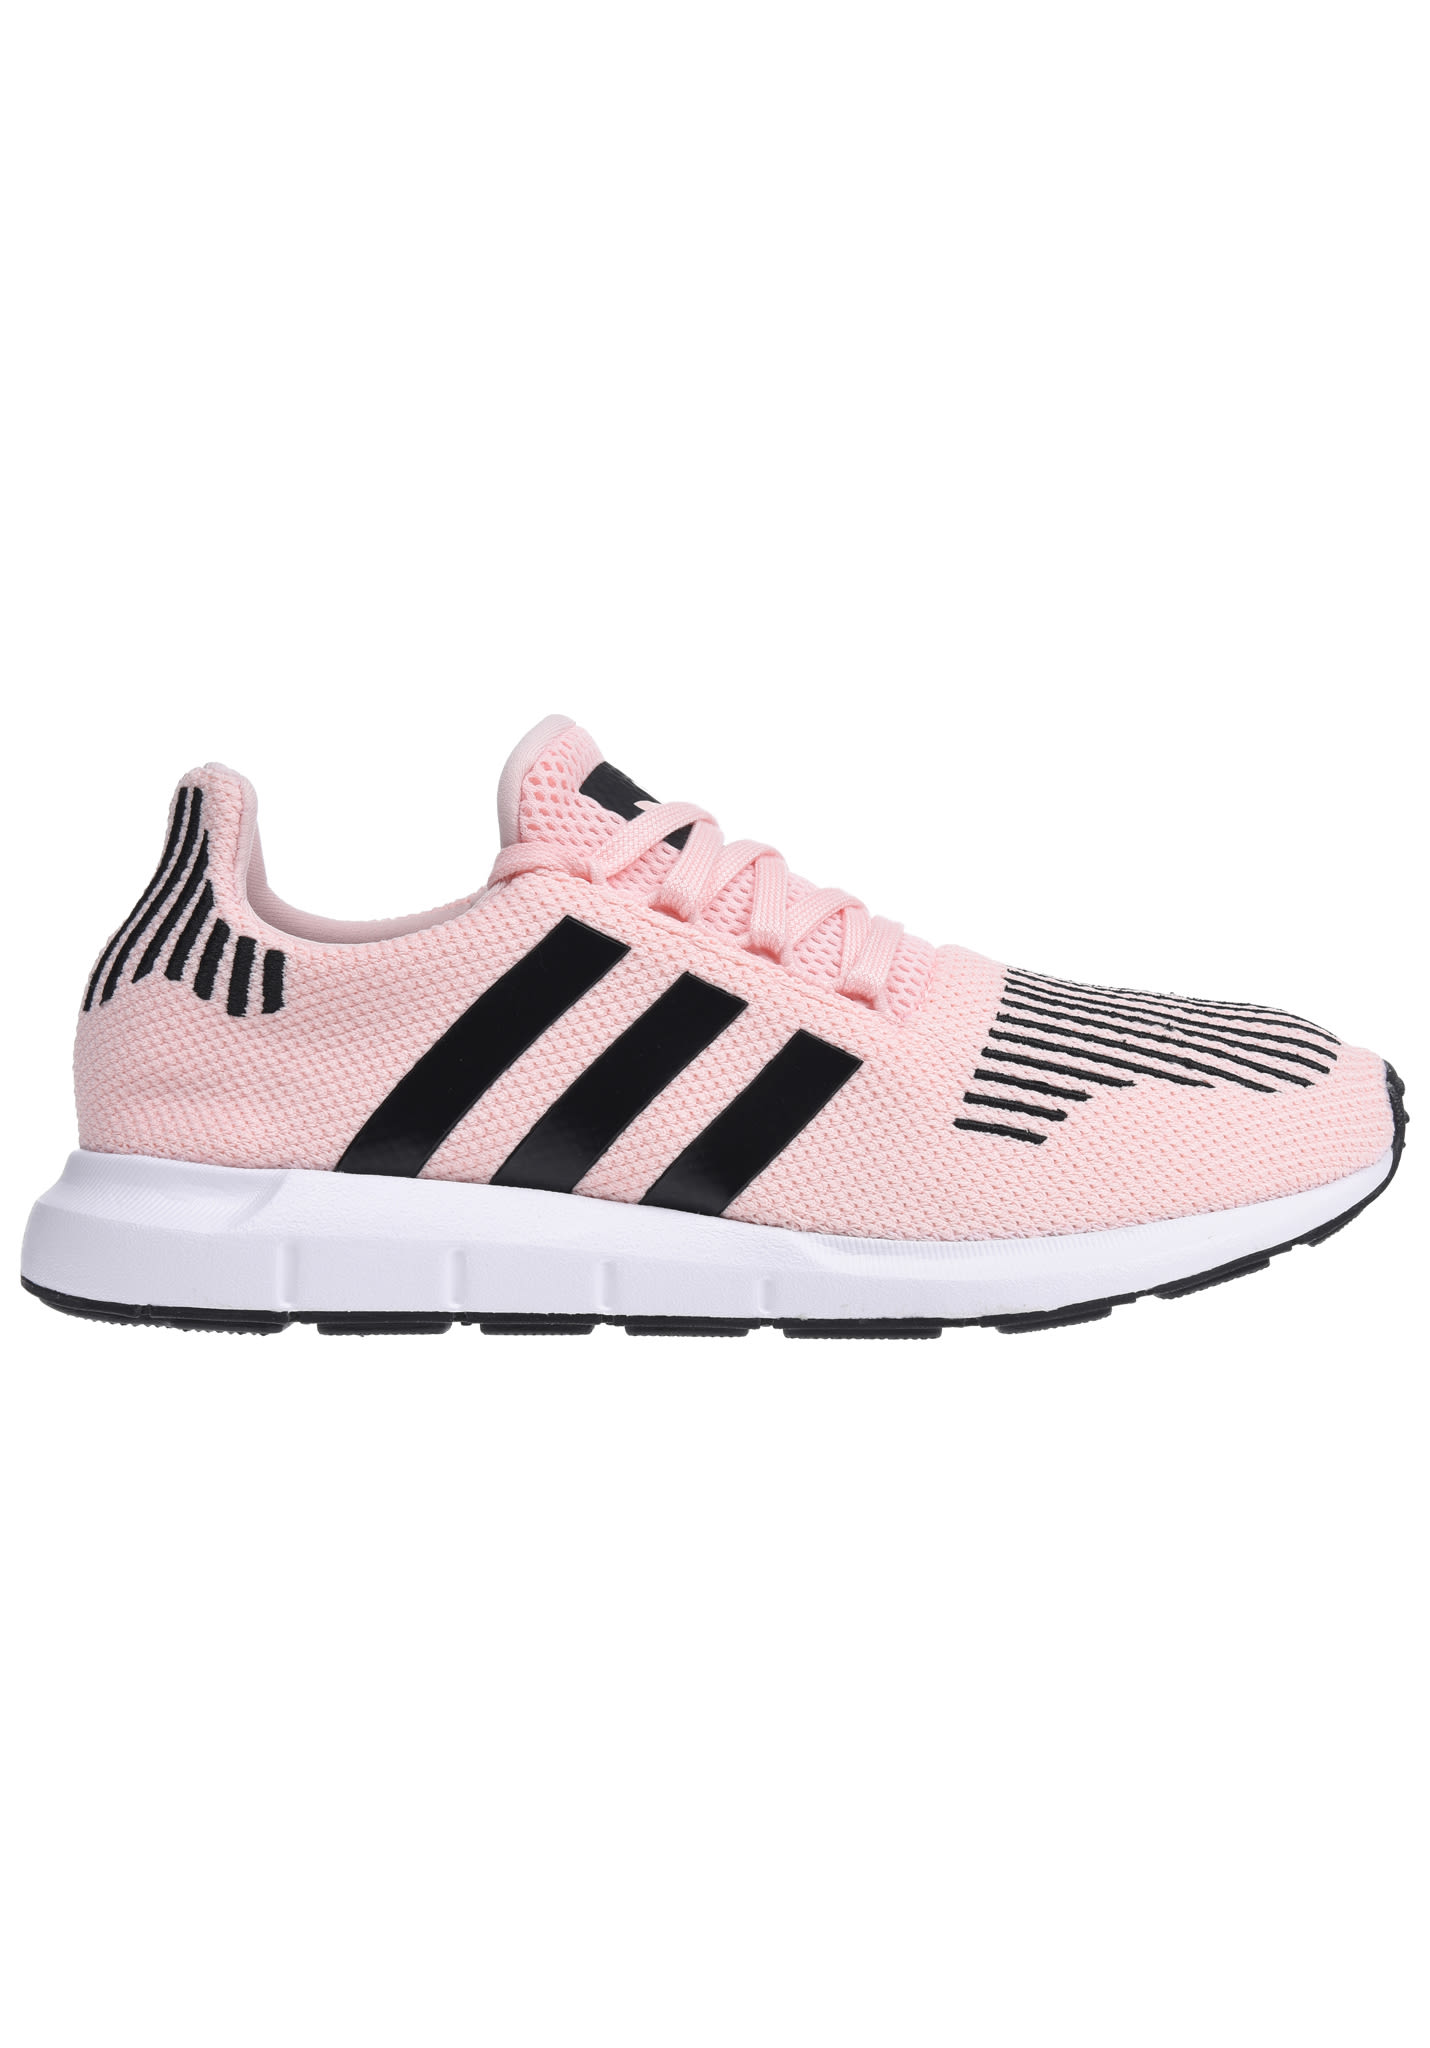 ADIDAS ORIGINALS Swift Run - Sneakers - Pink - Planet Sports e6a059d05